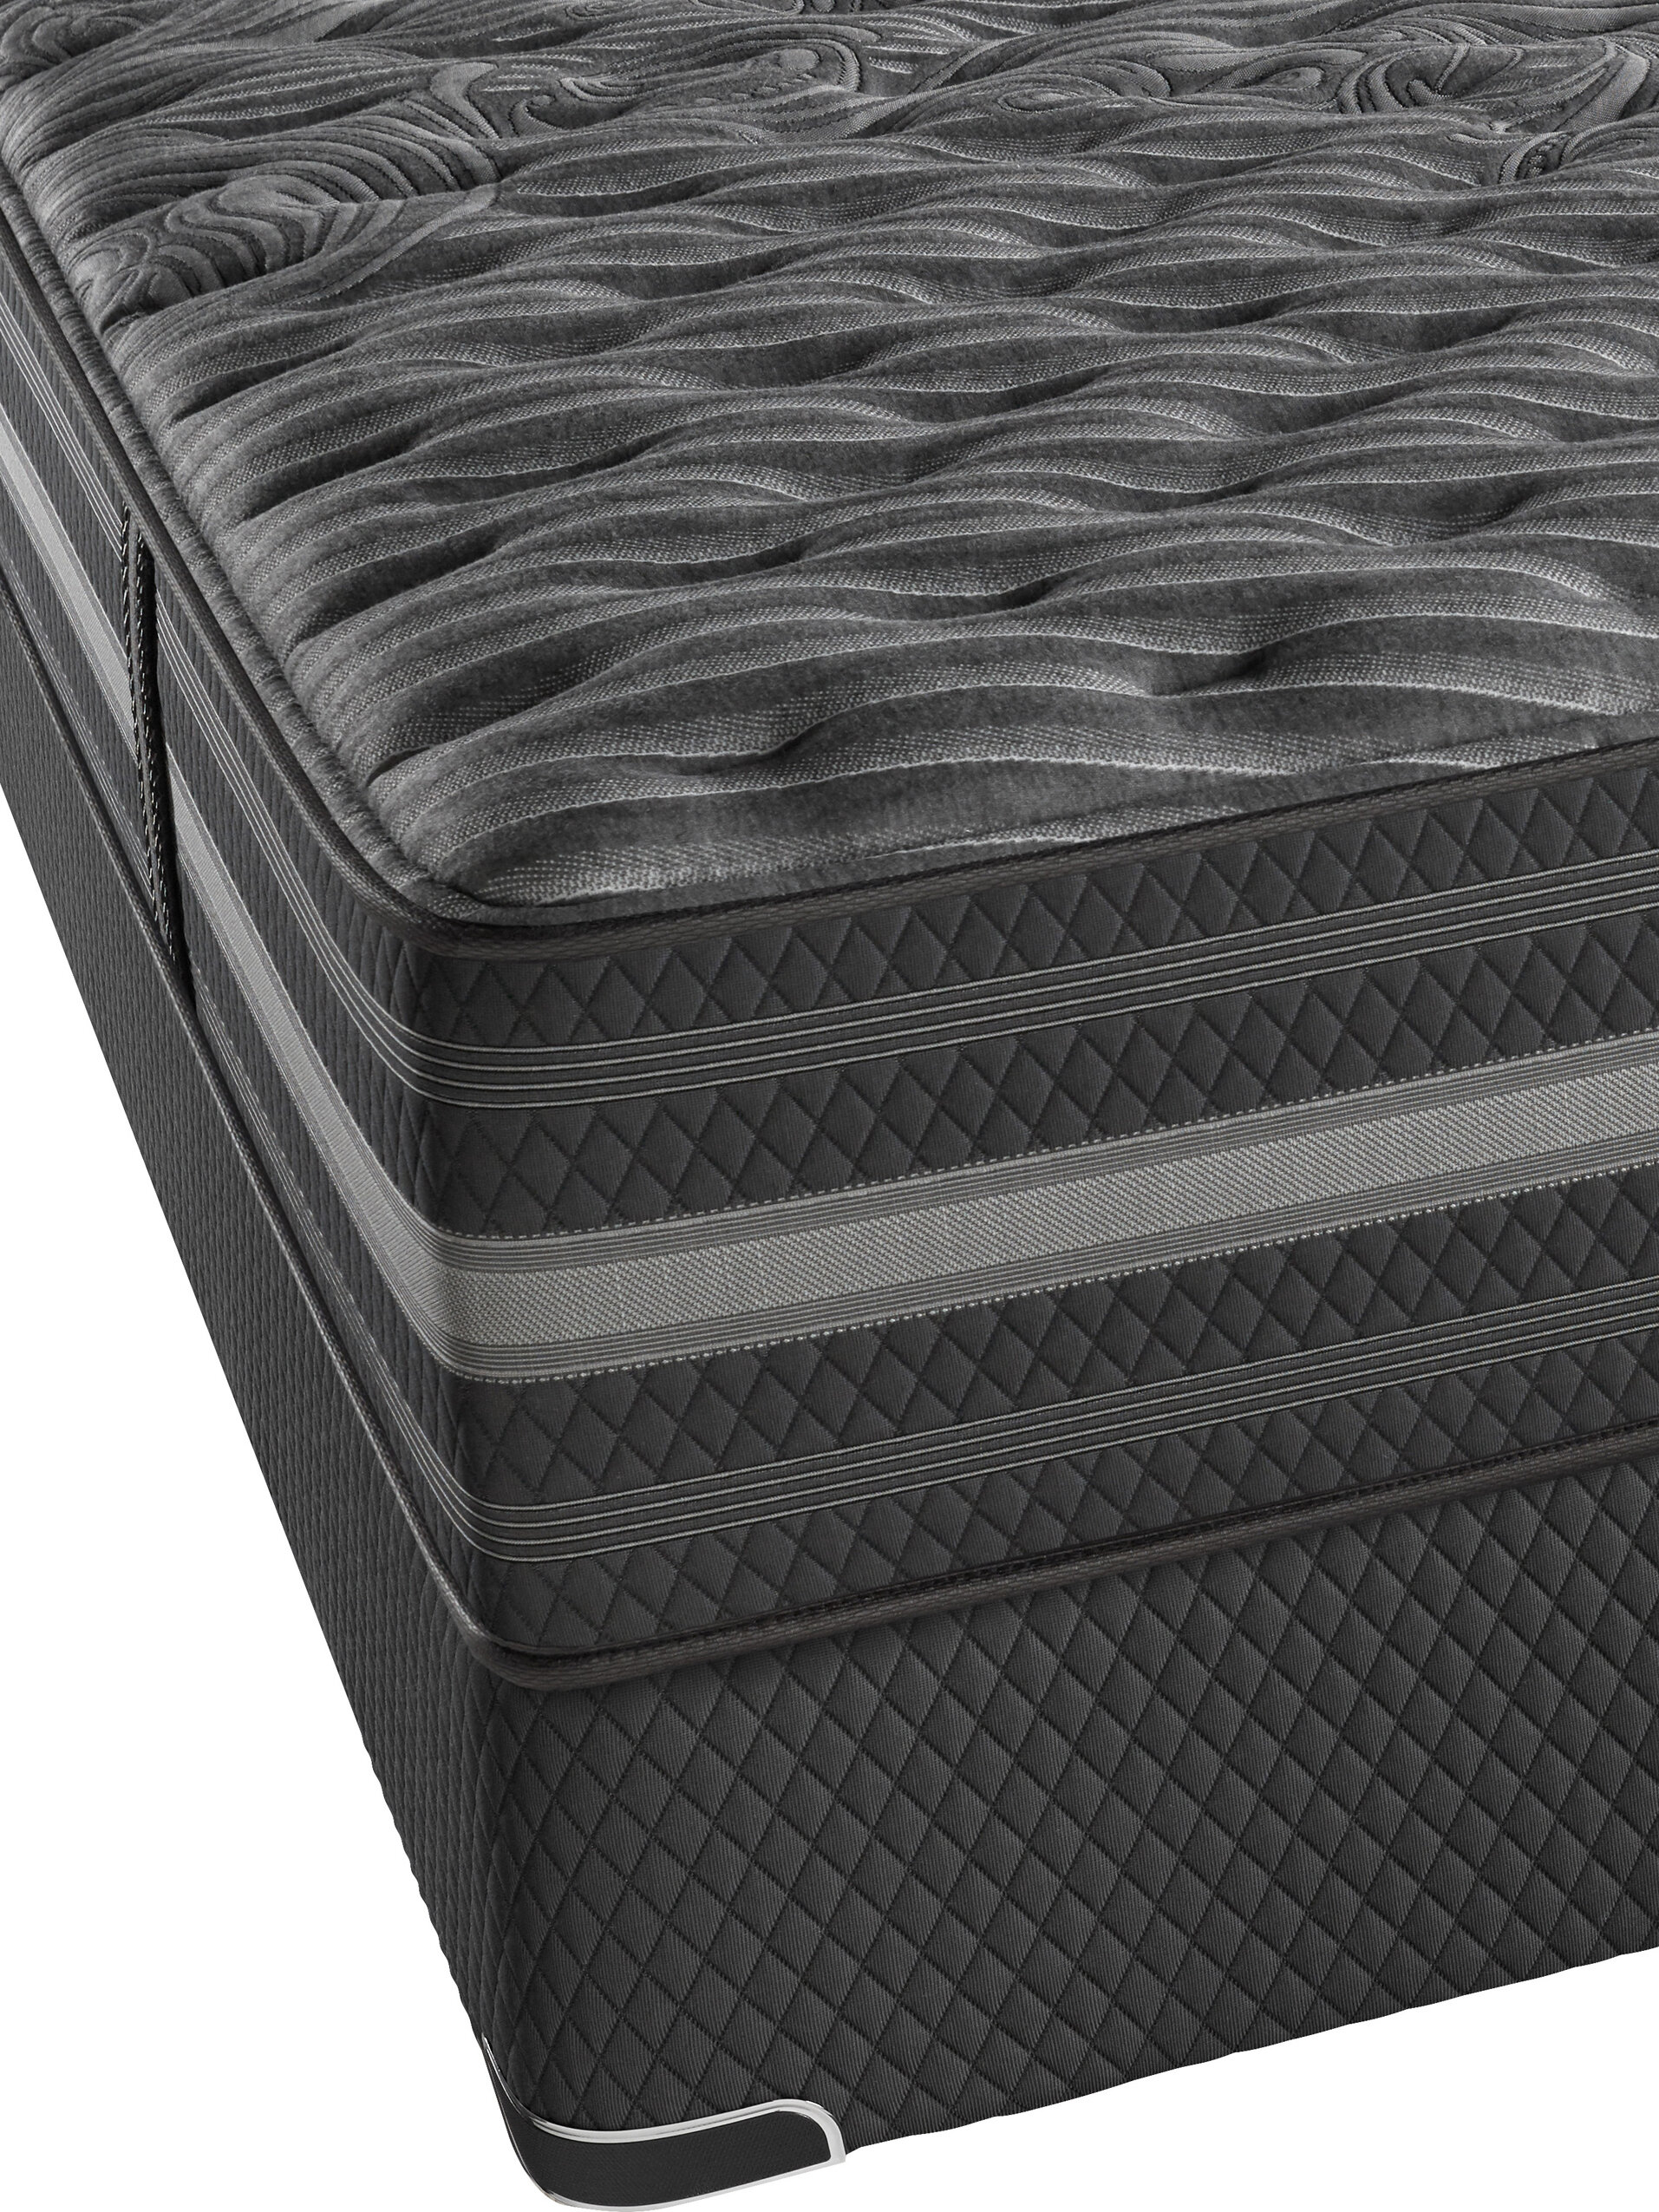 mattress pillowtop beautyrest base prices mattresses options plush black adjustable with work katarina